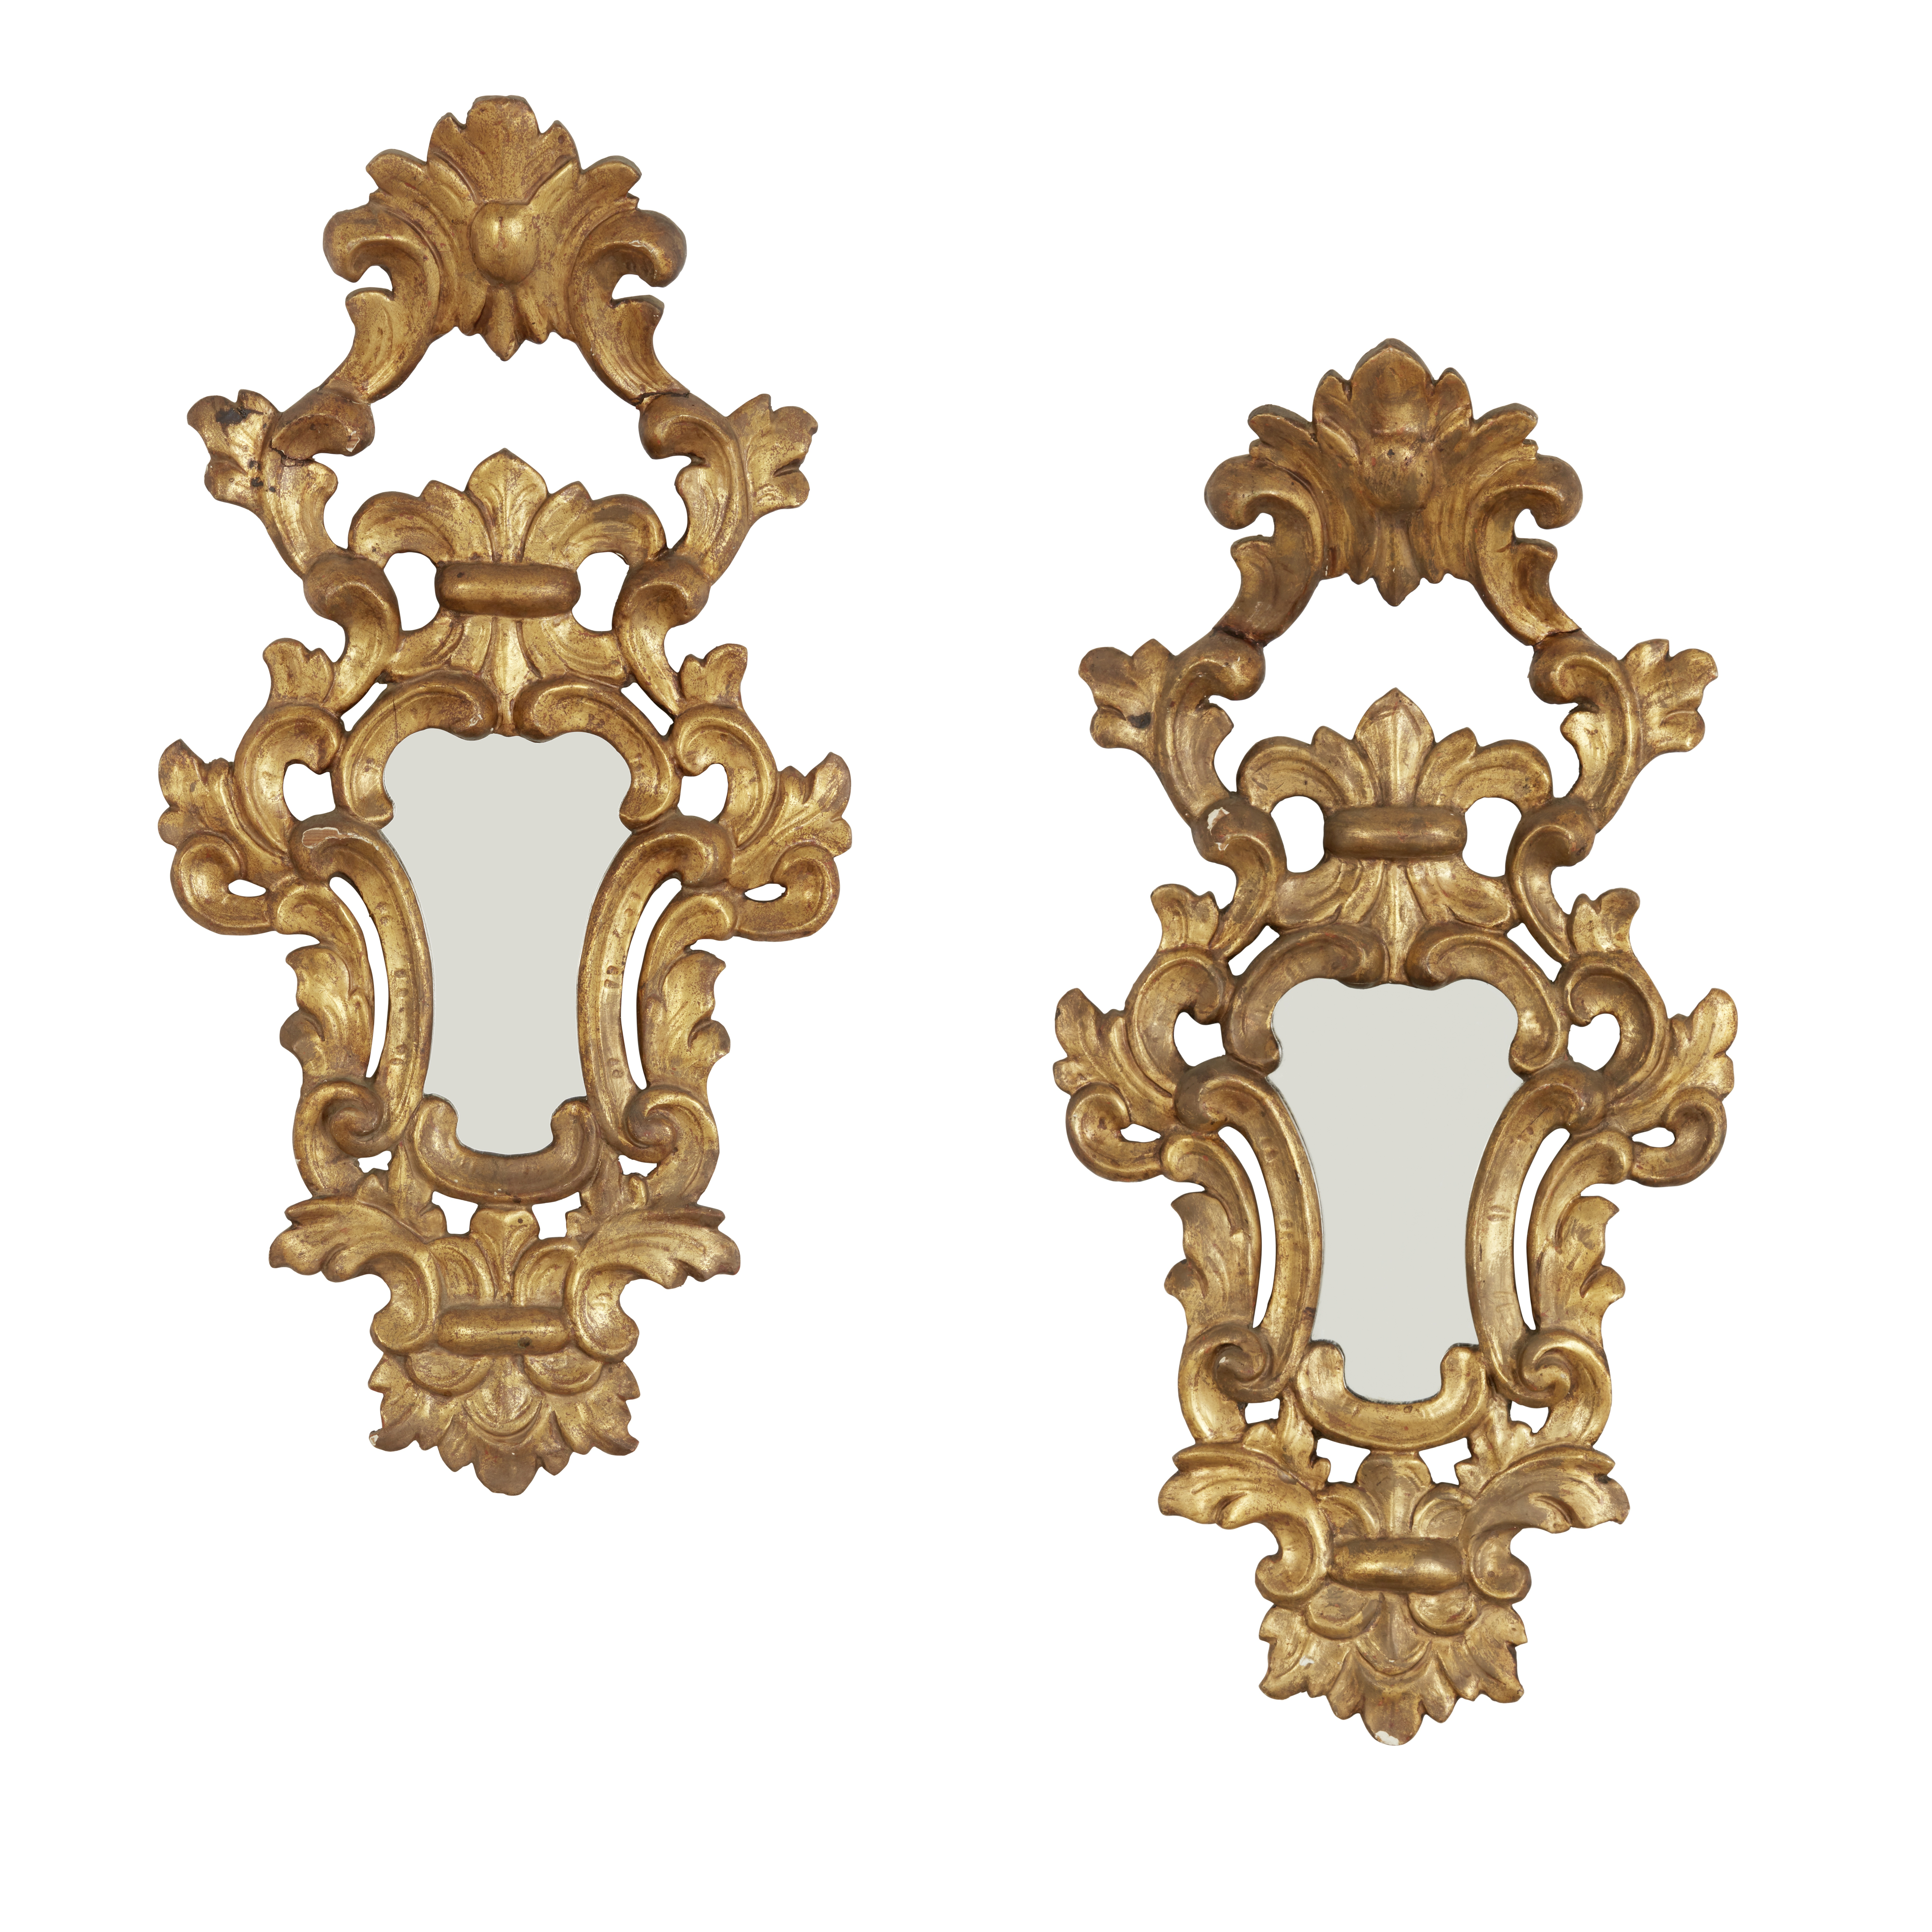 Lot 110 - A Pair of Italian Baroque Giltwood Mirrors Early 19th century